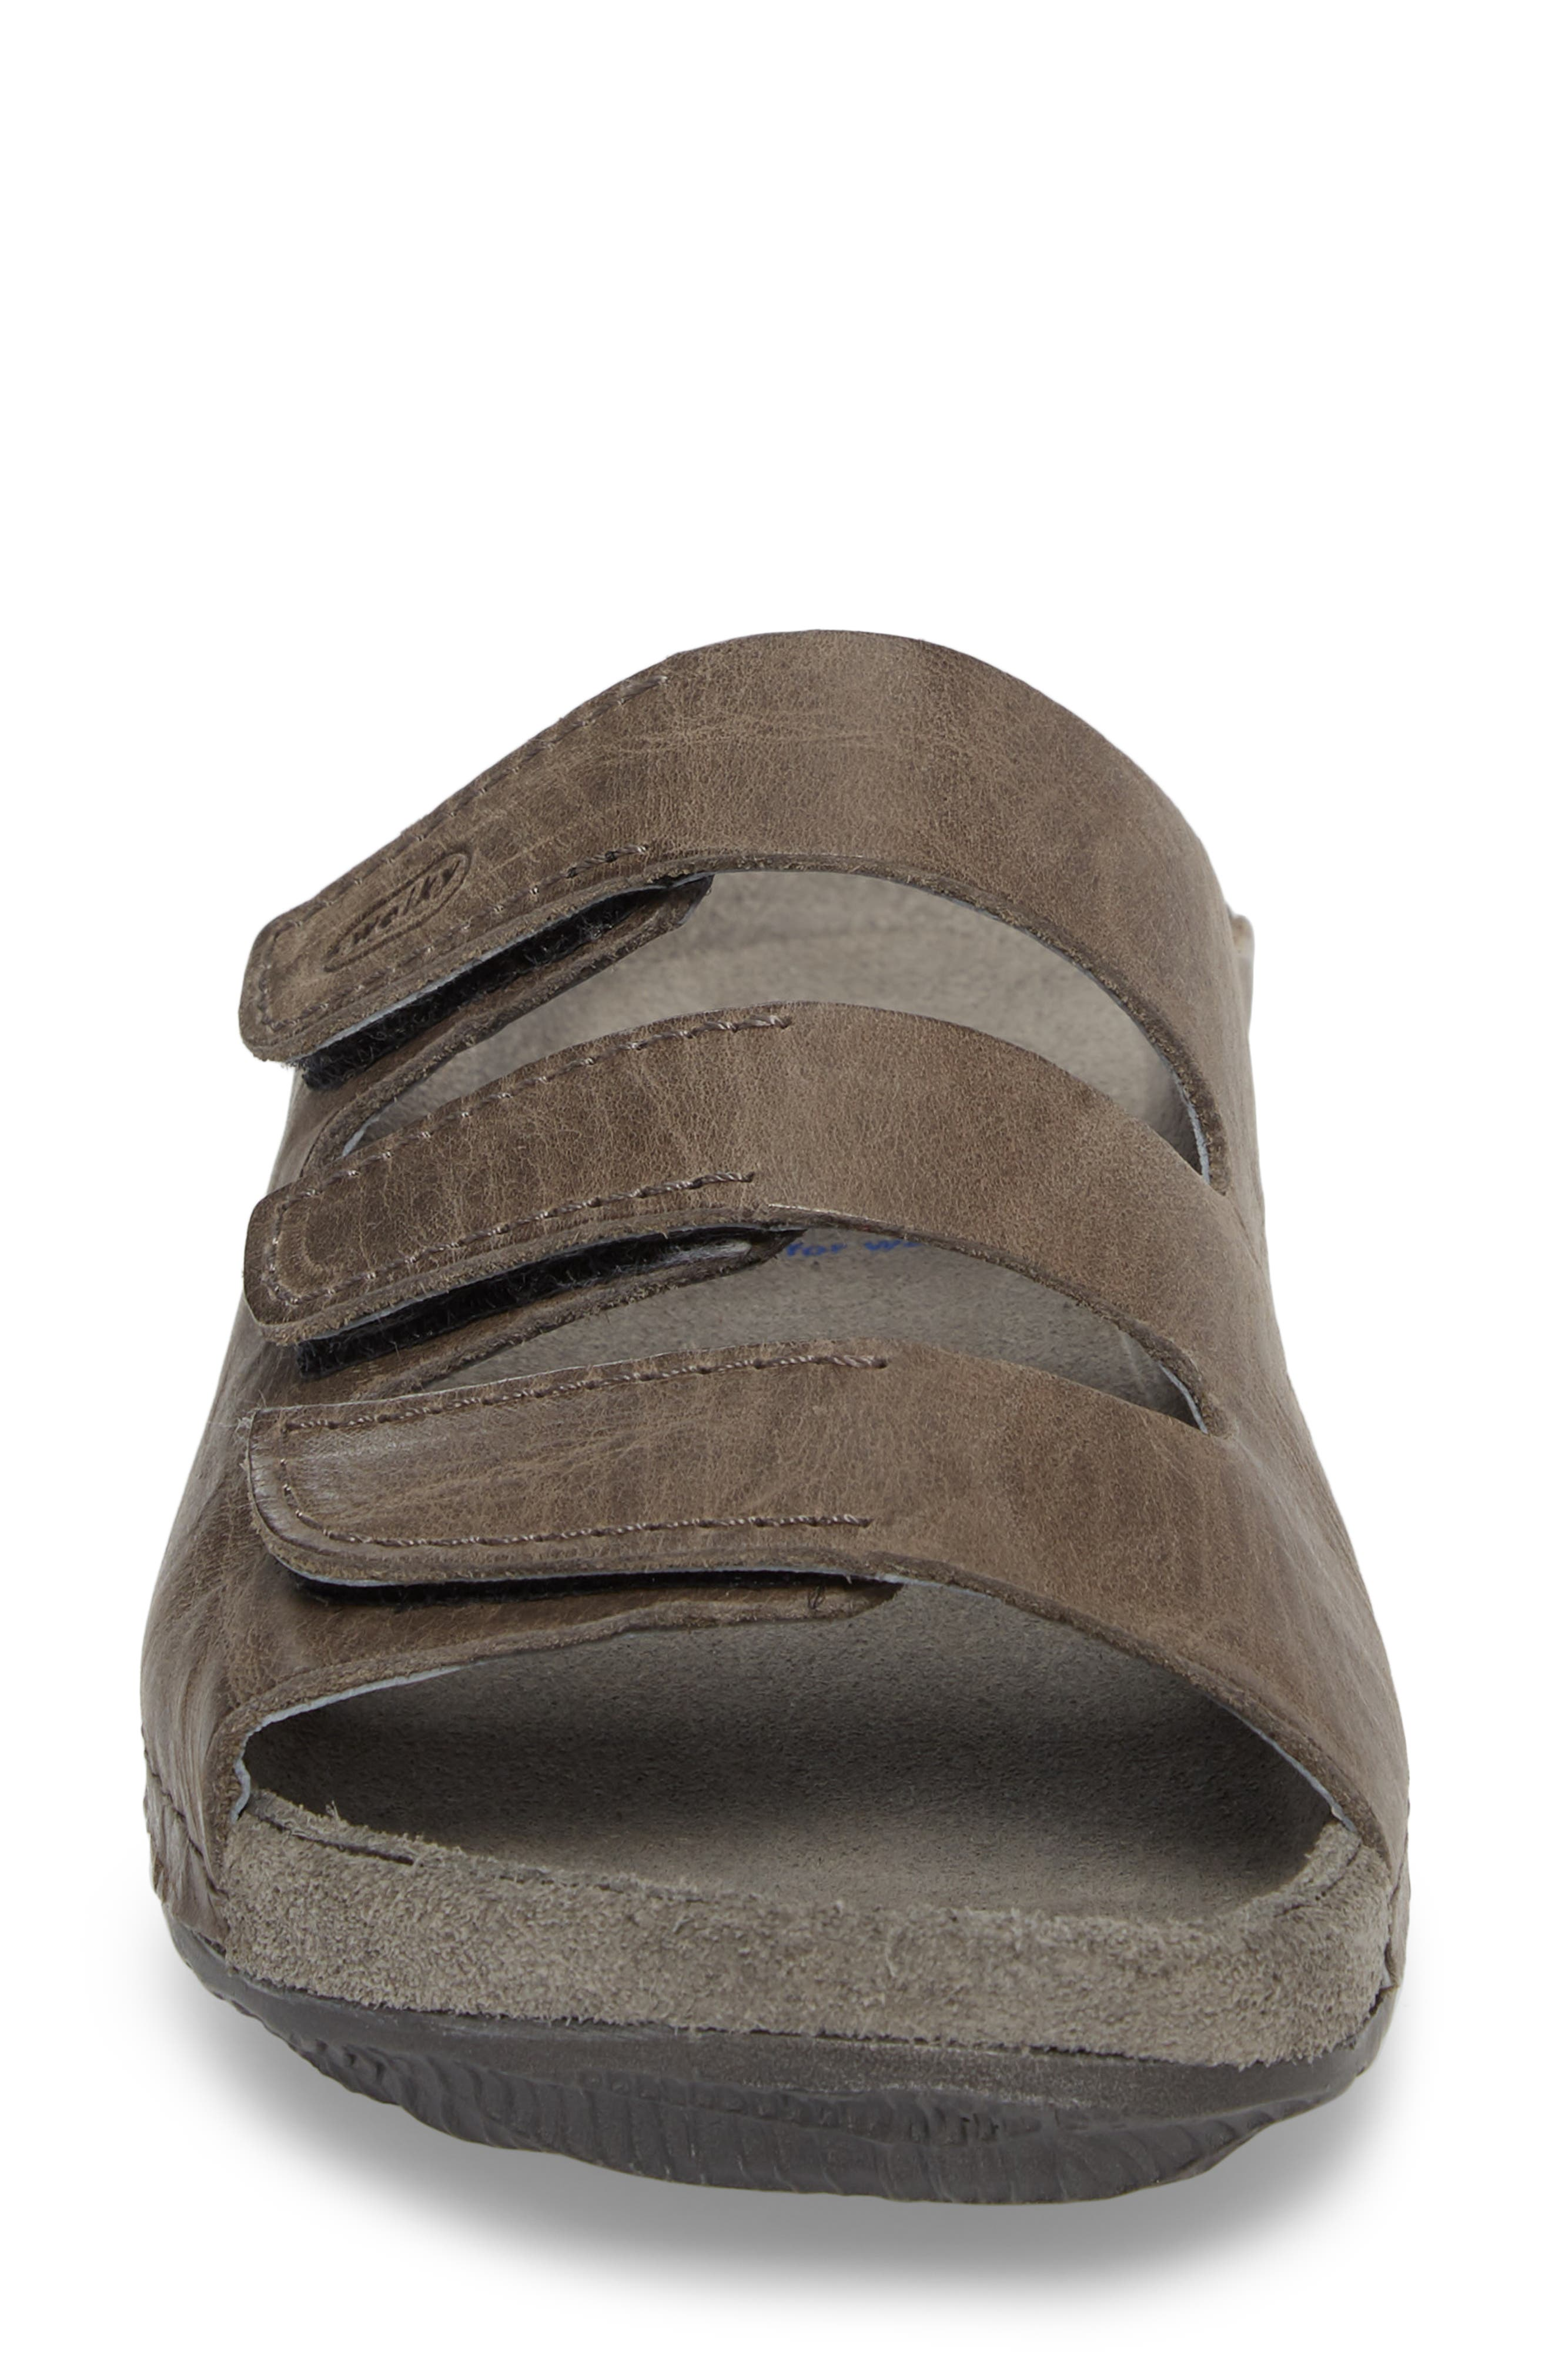 Nomad Slide Sandal,                             Alternate thumbnail 4, color,                             SLATE LEATHER